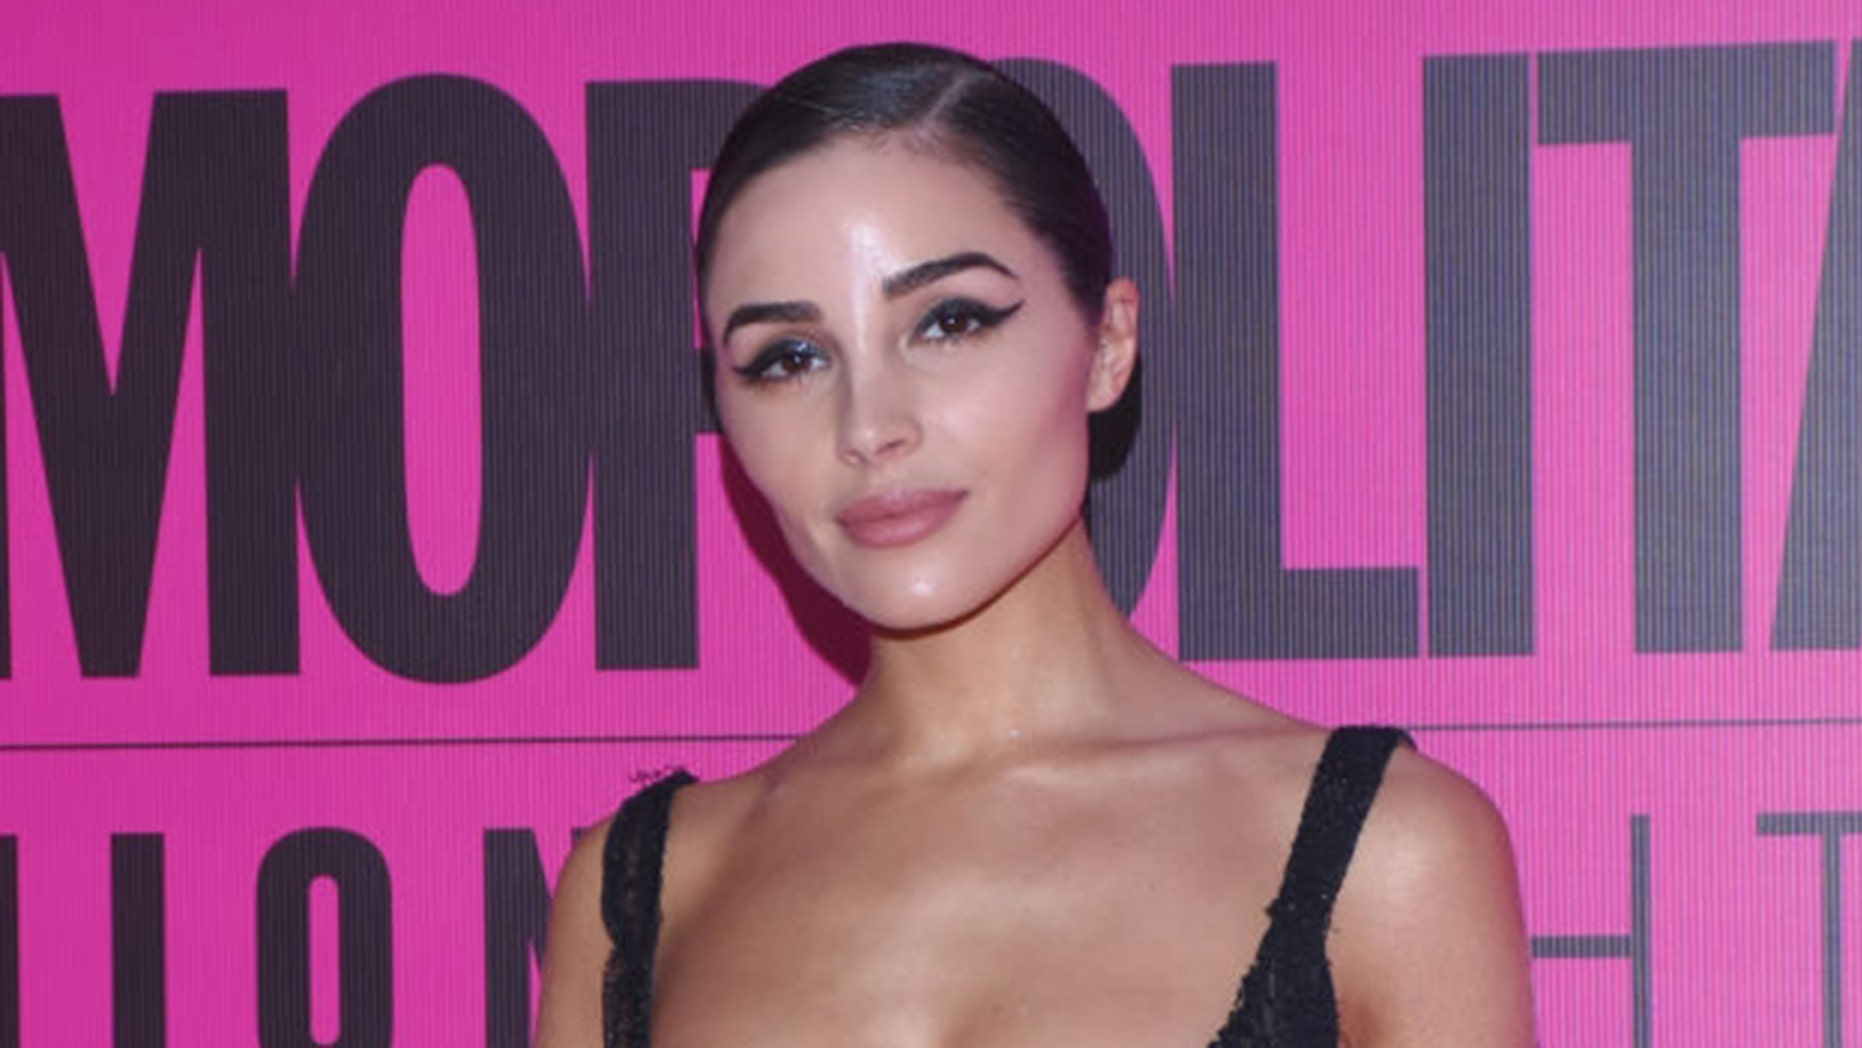 Olivia Culpo is sick of married men sliding into her DMs. The model claims that after she split from Danny Amendola, married celebrities tried to contact her.